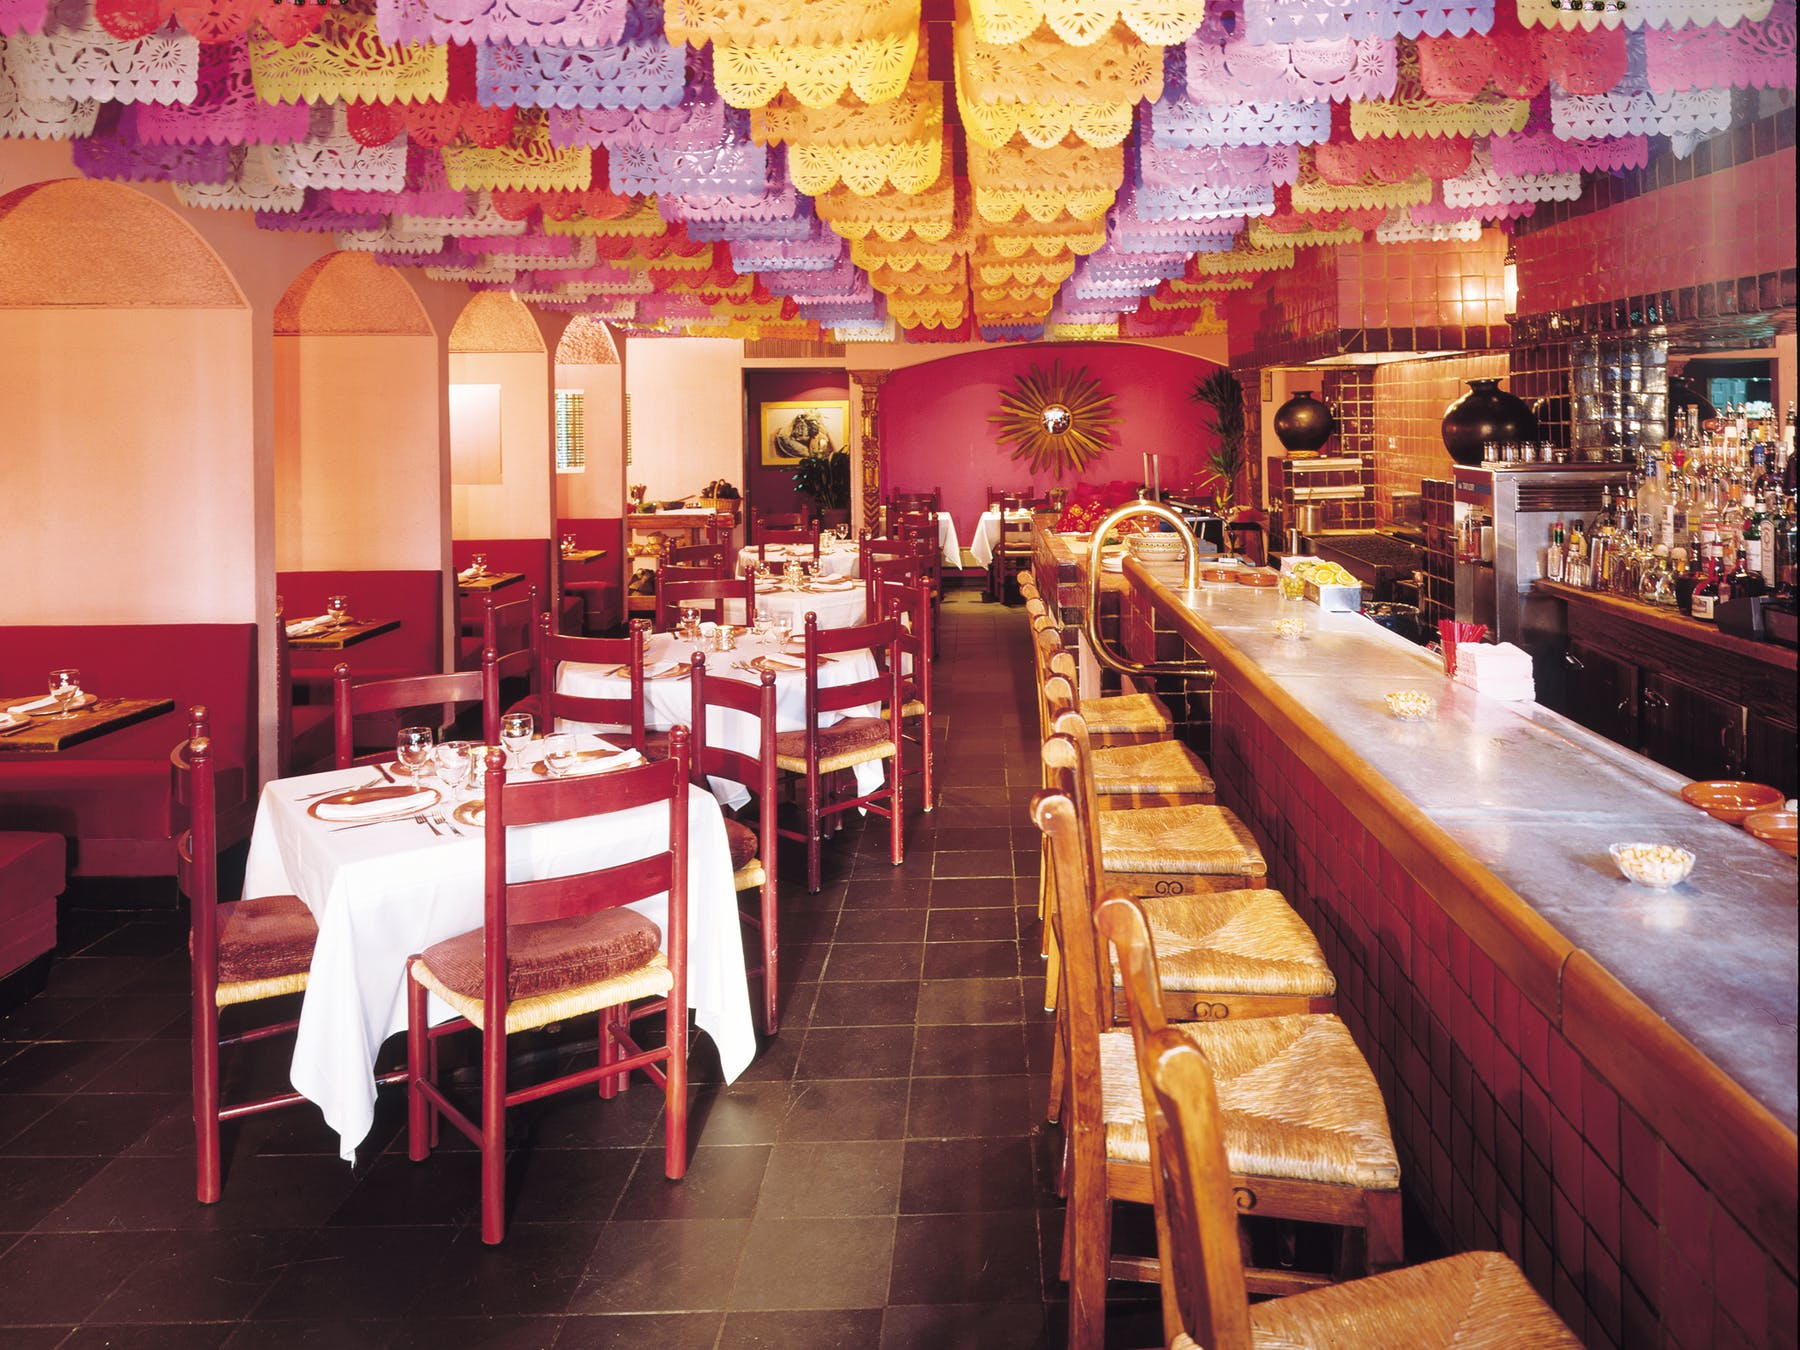 inside Rosa Mexicano in First Avenue, NY